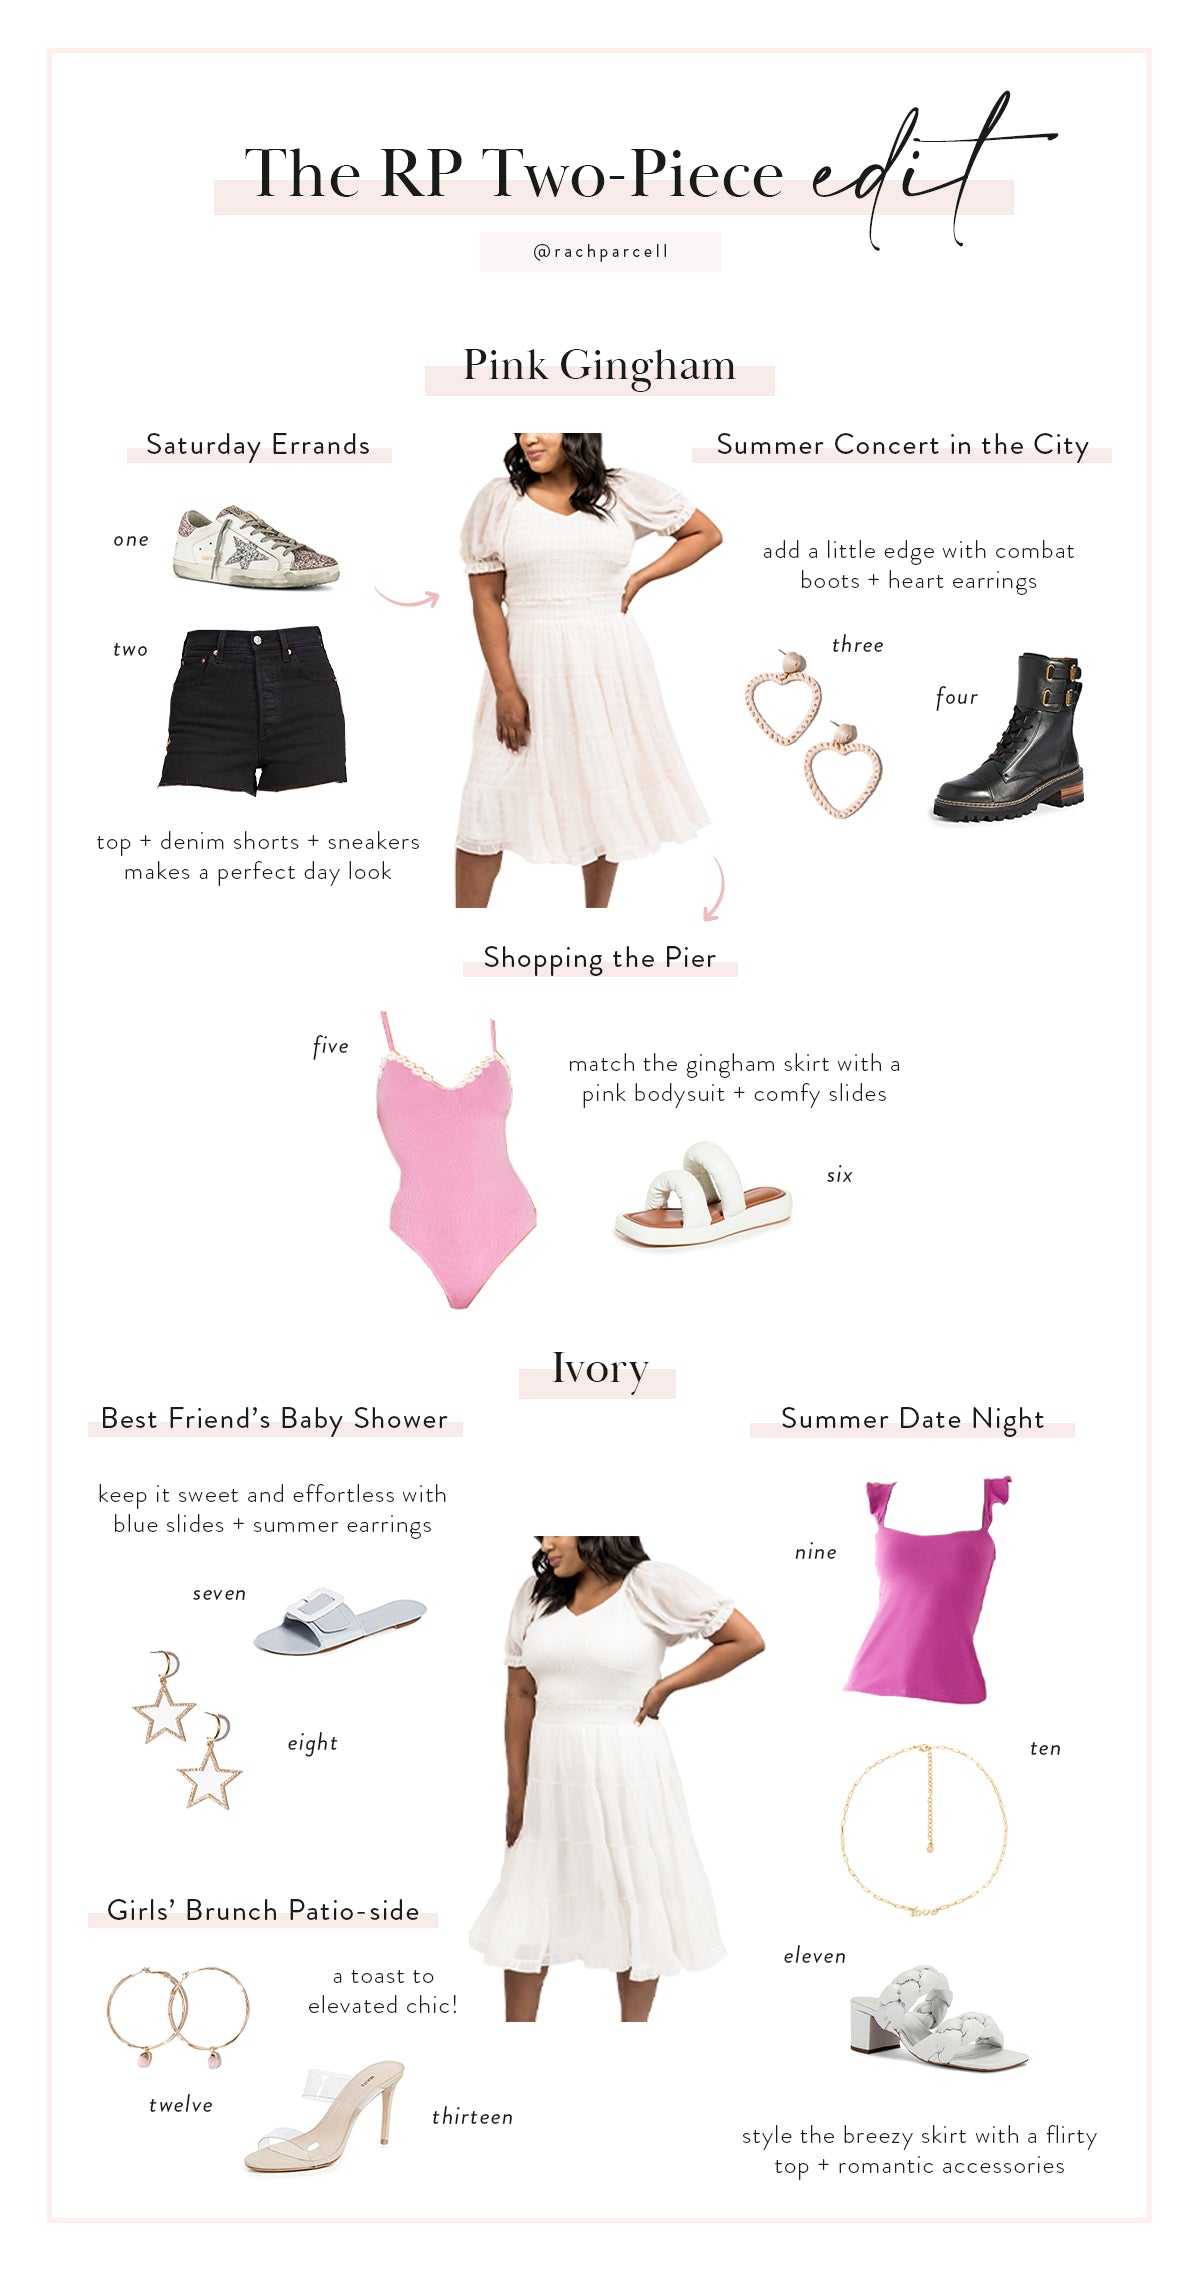 RP Two Piece Styling Ideas